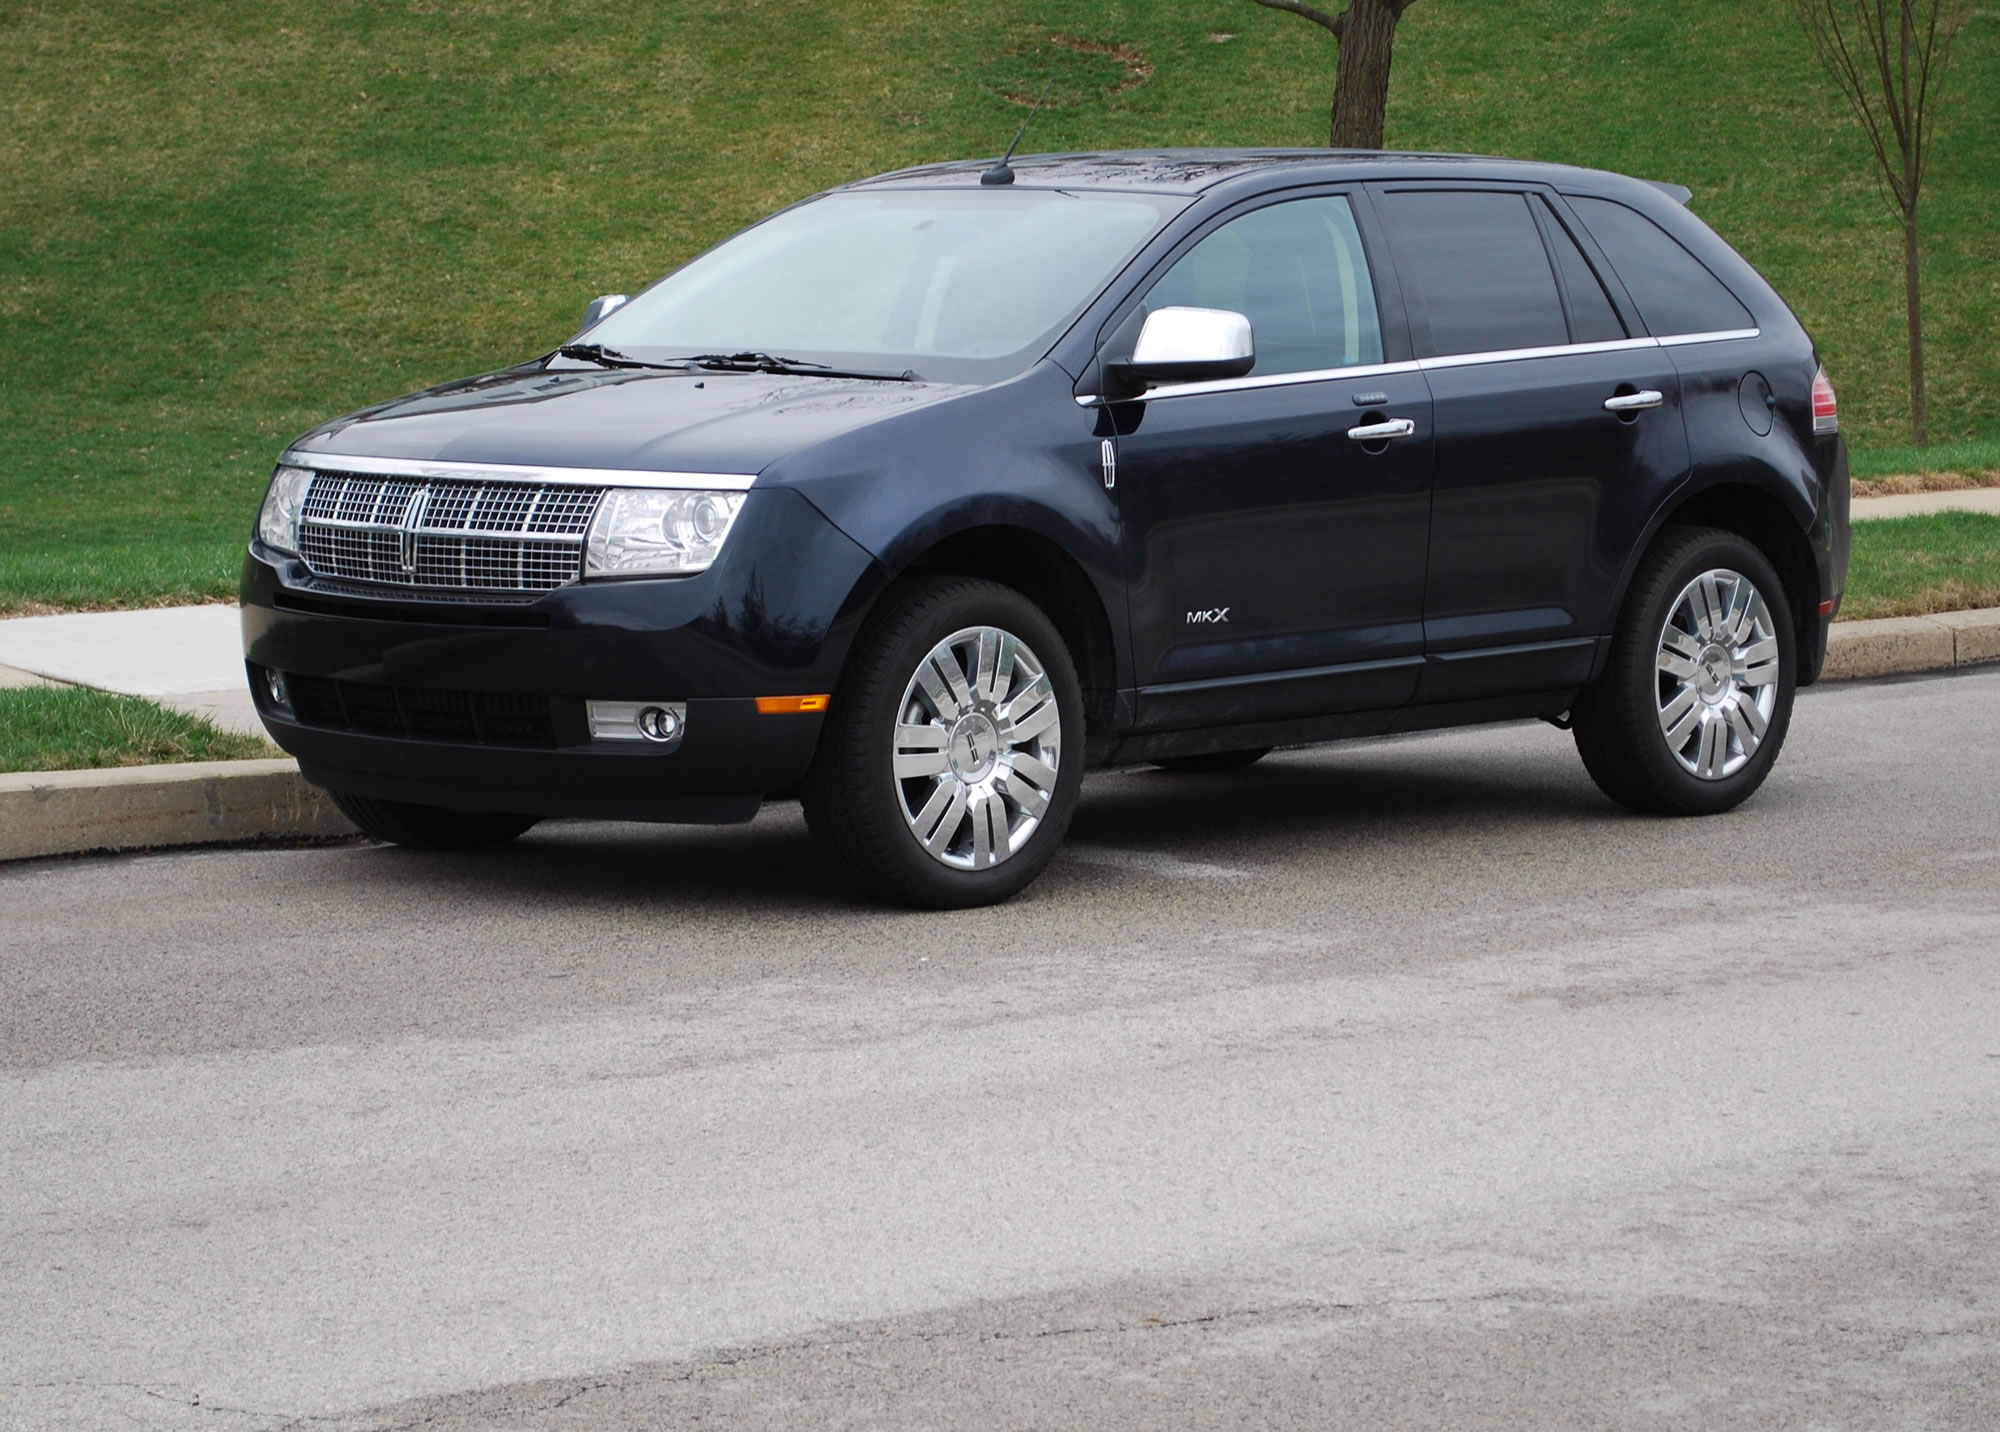 2009 Lincoln Mkx #5